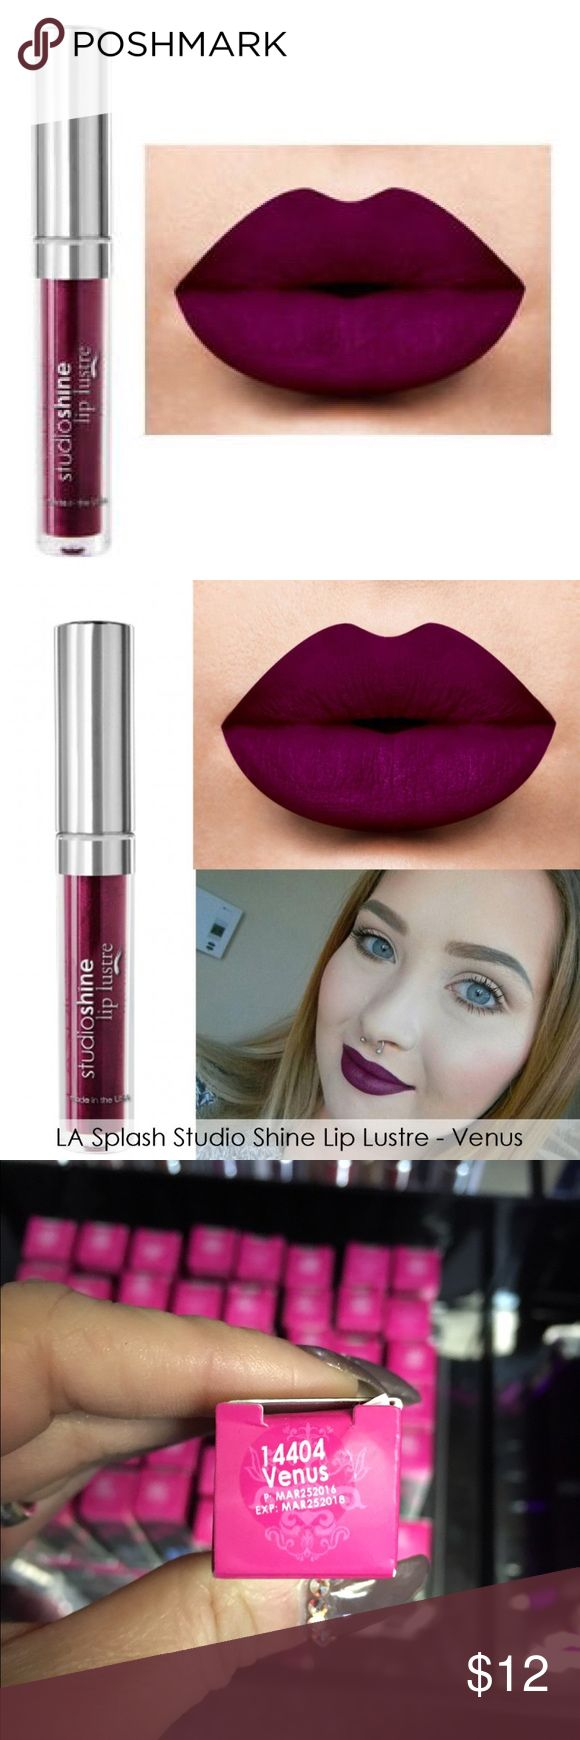 NEW LA SPLASH STUDIO SHINE IN VENUS Fairy tales do come true with LA SPLASH fairy dusted waterproof StudioShine Lip Lustre. Specially formulated with the highest quality pigments & pearls.   Care recommendation: please note, Liquid to matte lipsticks contain a drying agent to deliver the liquid to matte effect.   To extend the life of  your lippies It is recommended to close tightly after each use, keep away from direct sunlight and store in a cool/room temp area.  ASK ME TO BUNDLE YOUR…